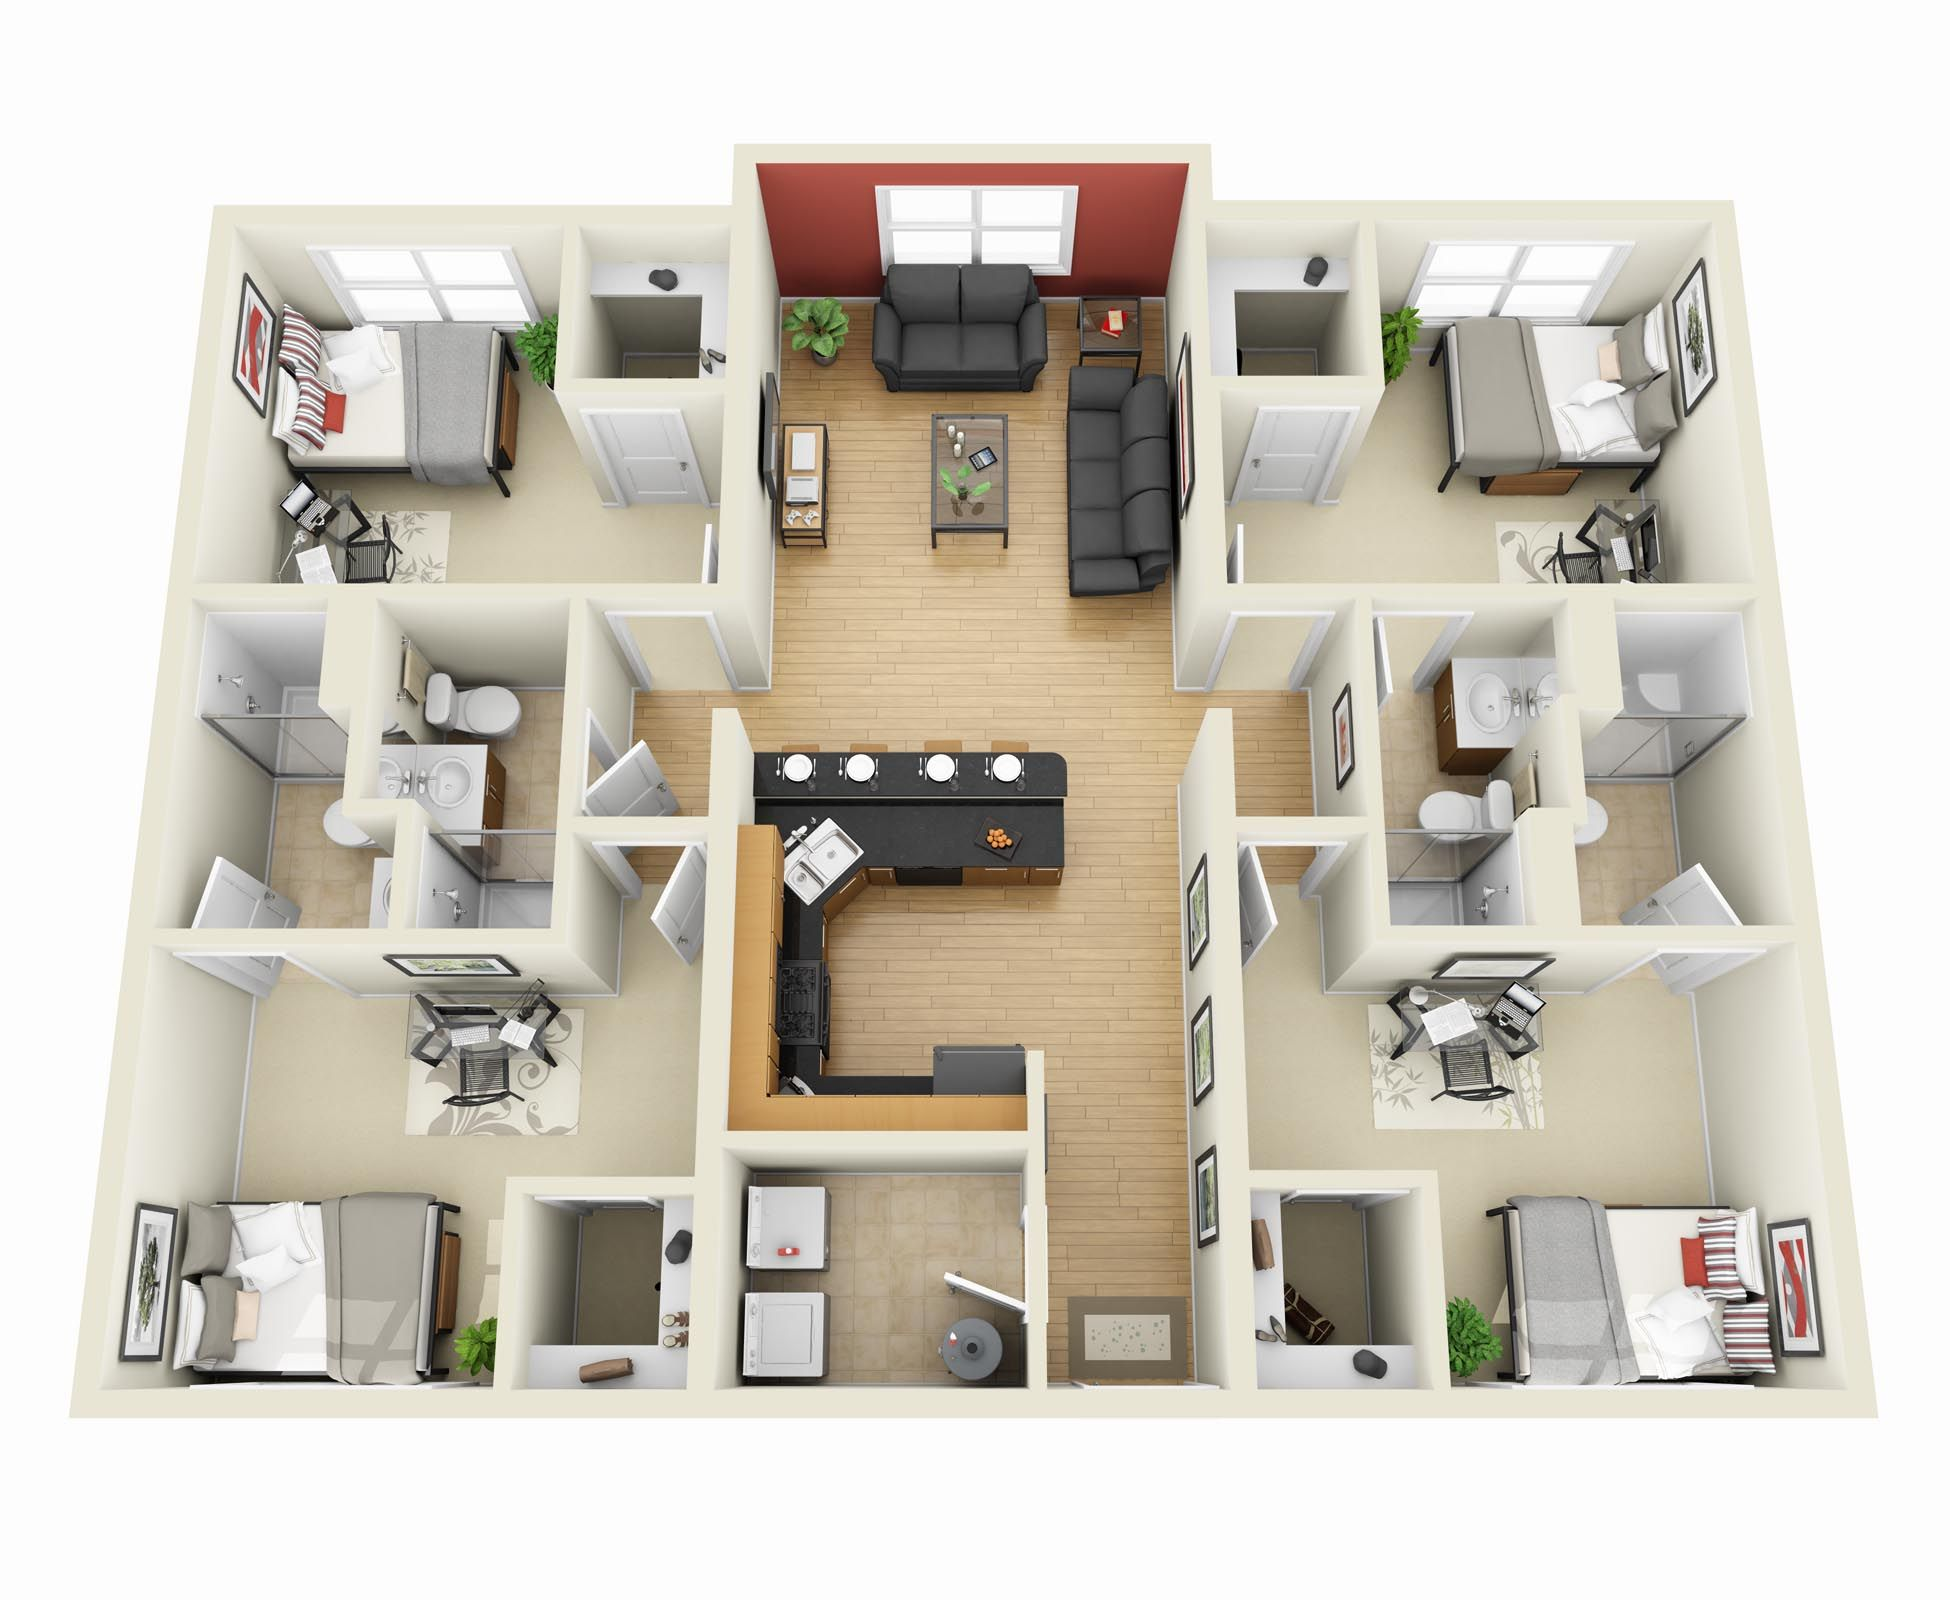 Superieur 50 Four U201c4u201d Bedroom Apartment/House Plans